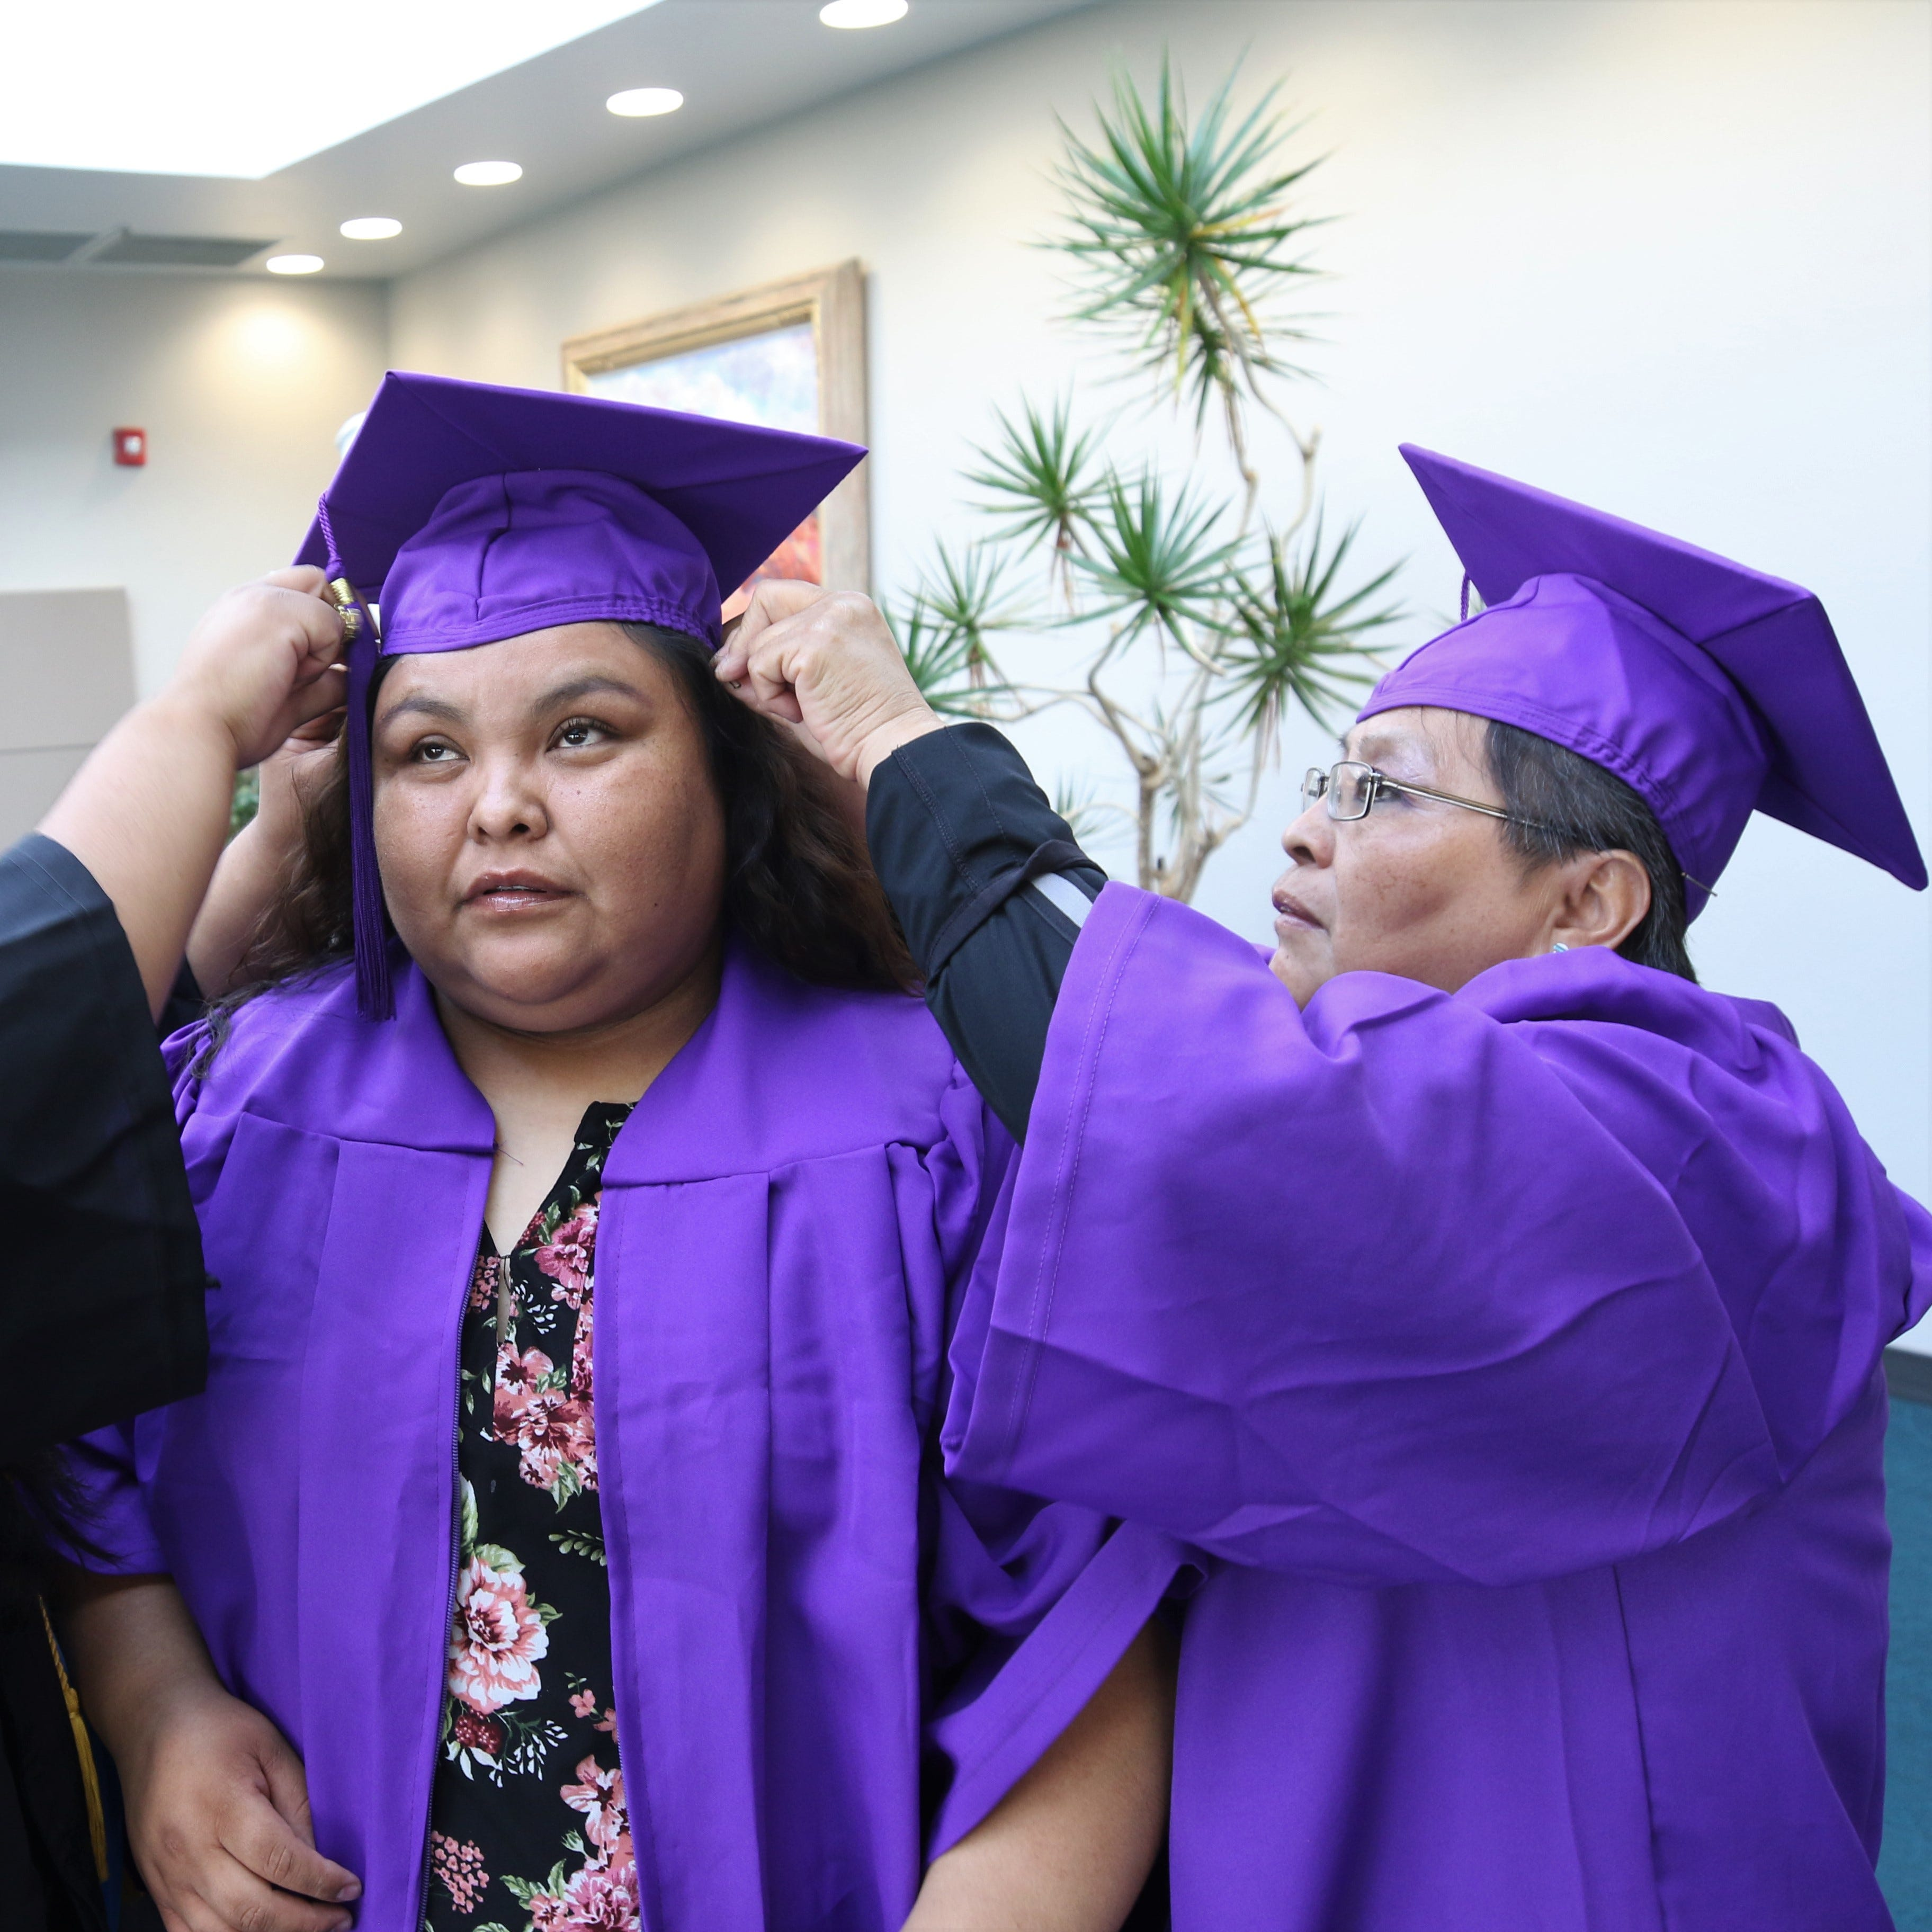 More than 1,800 graduate from San Juan College during ceremony